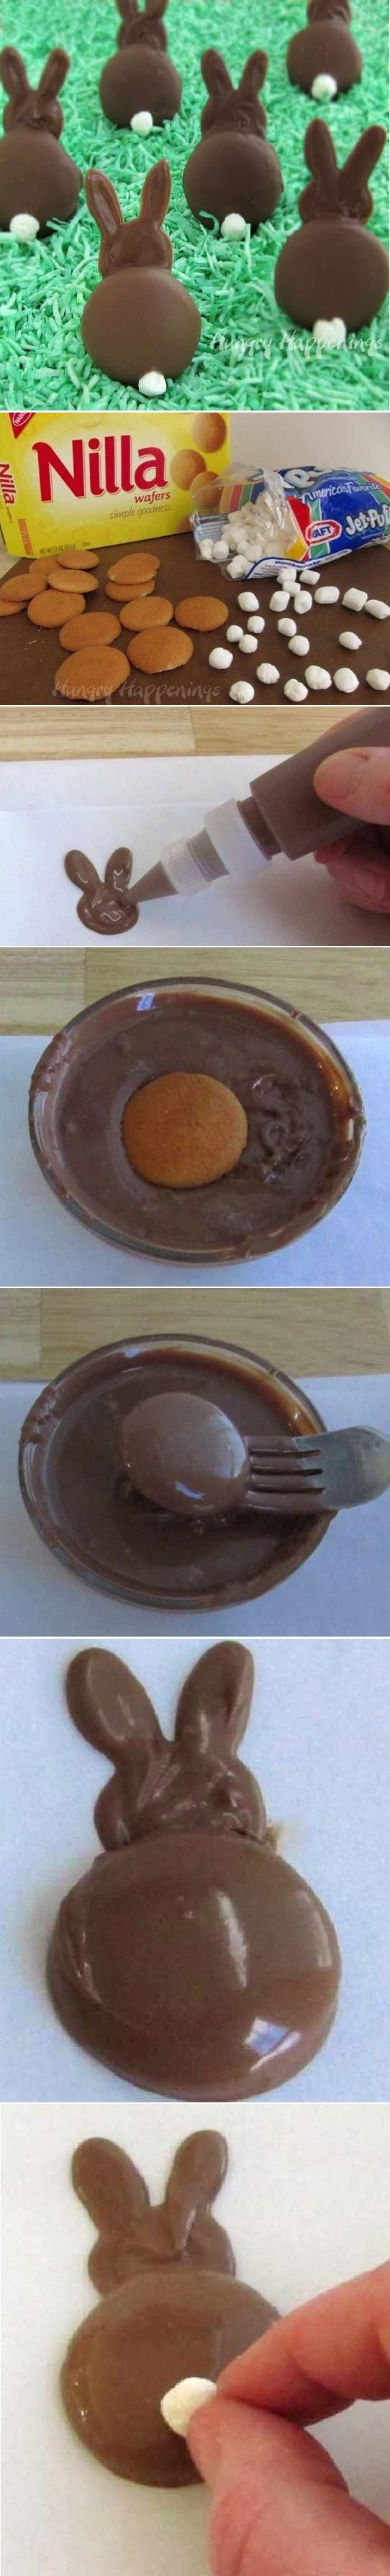 DIY Chocolate Wafer Bunny